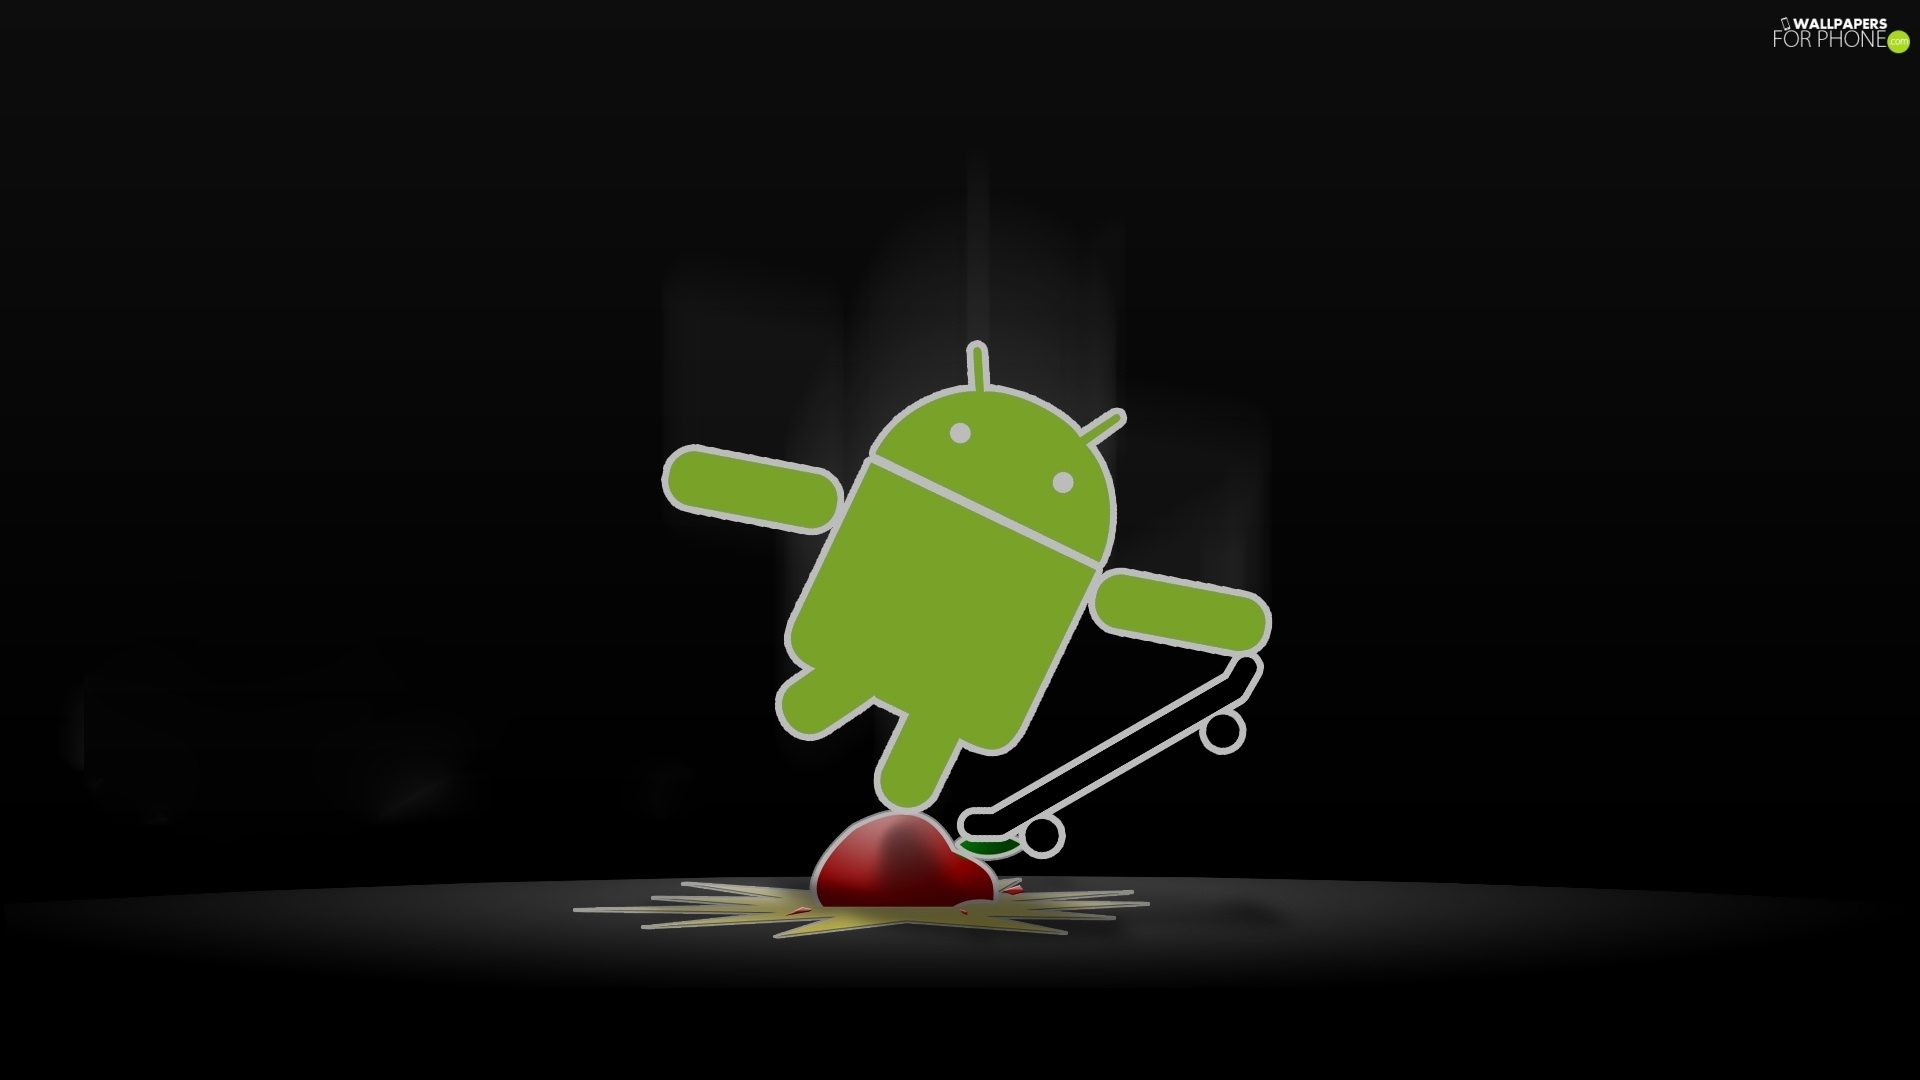 Apple, Android, skate